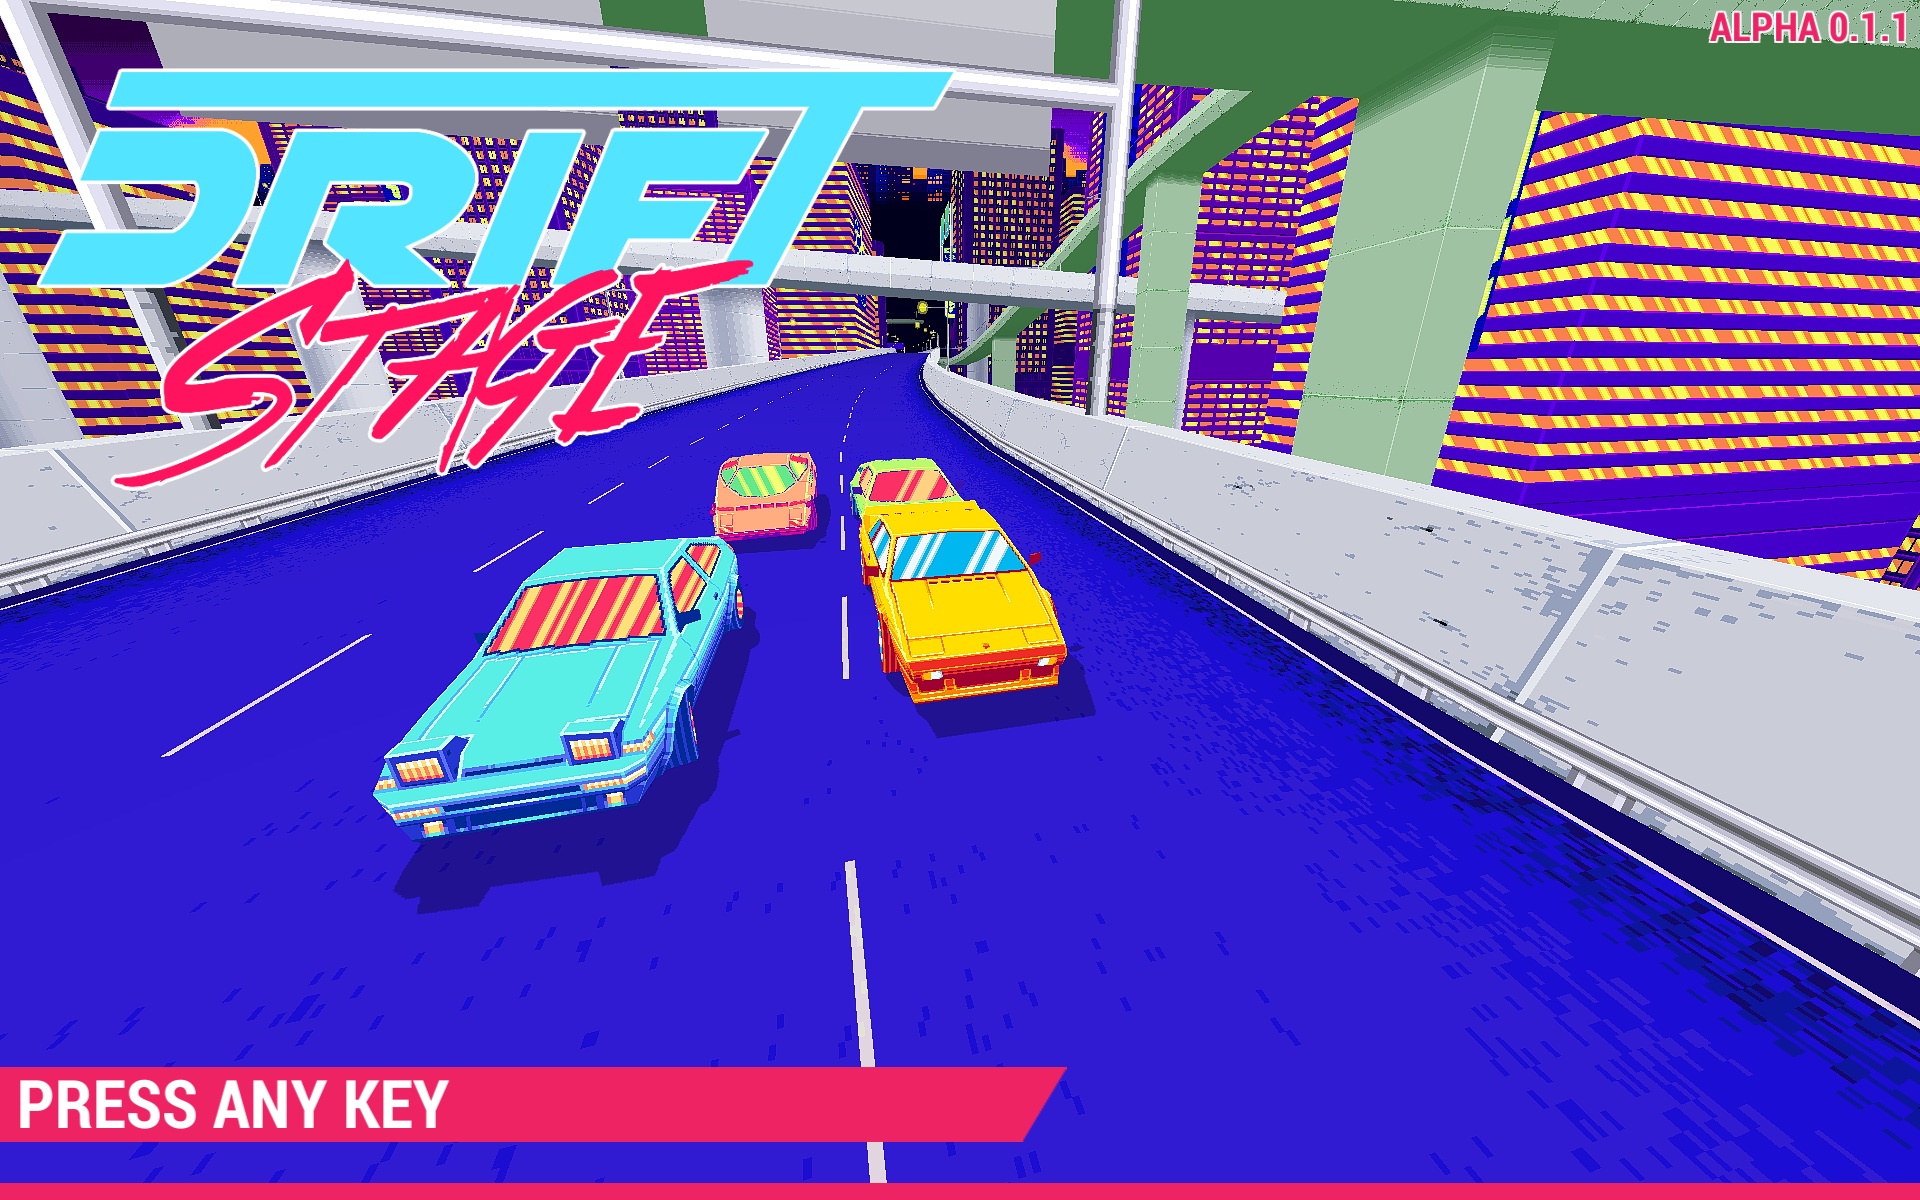 driftstage-title-screen.png